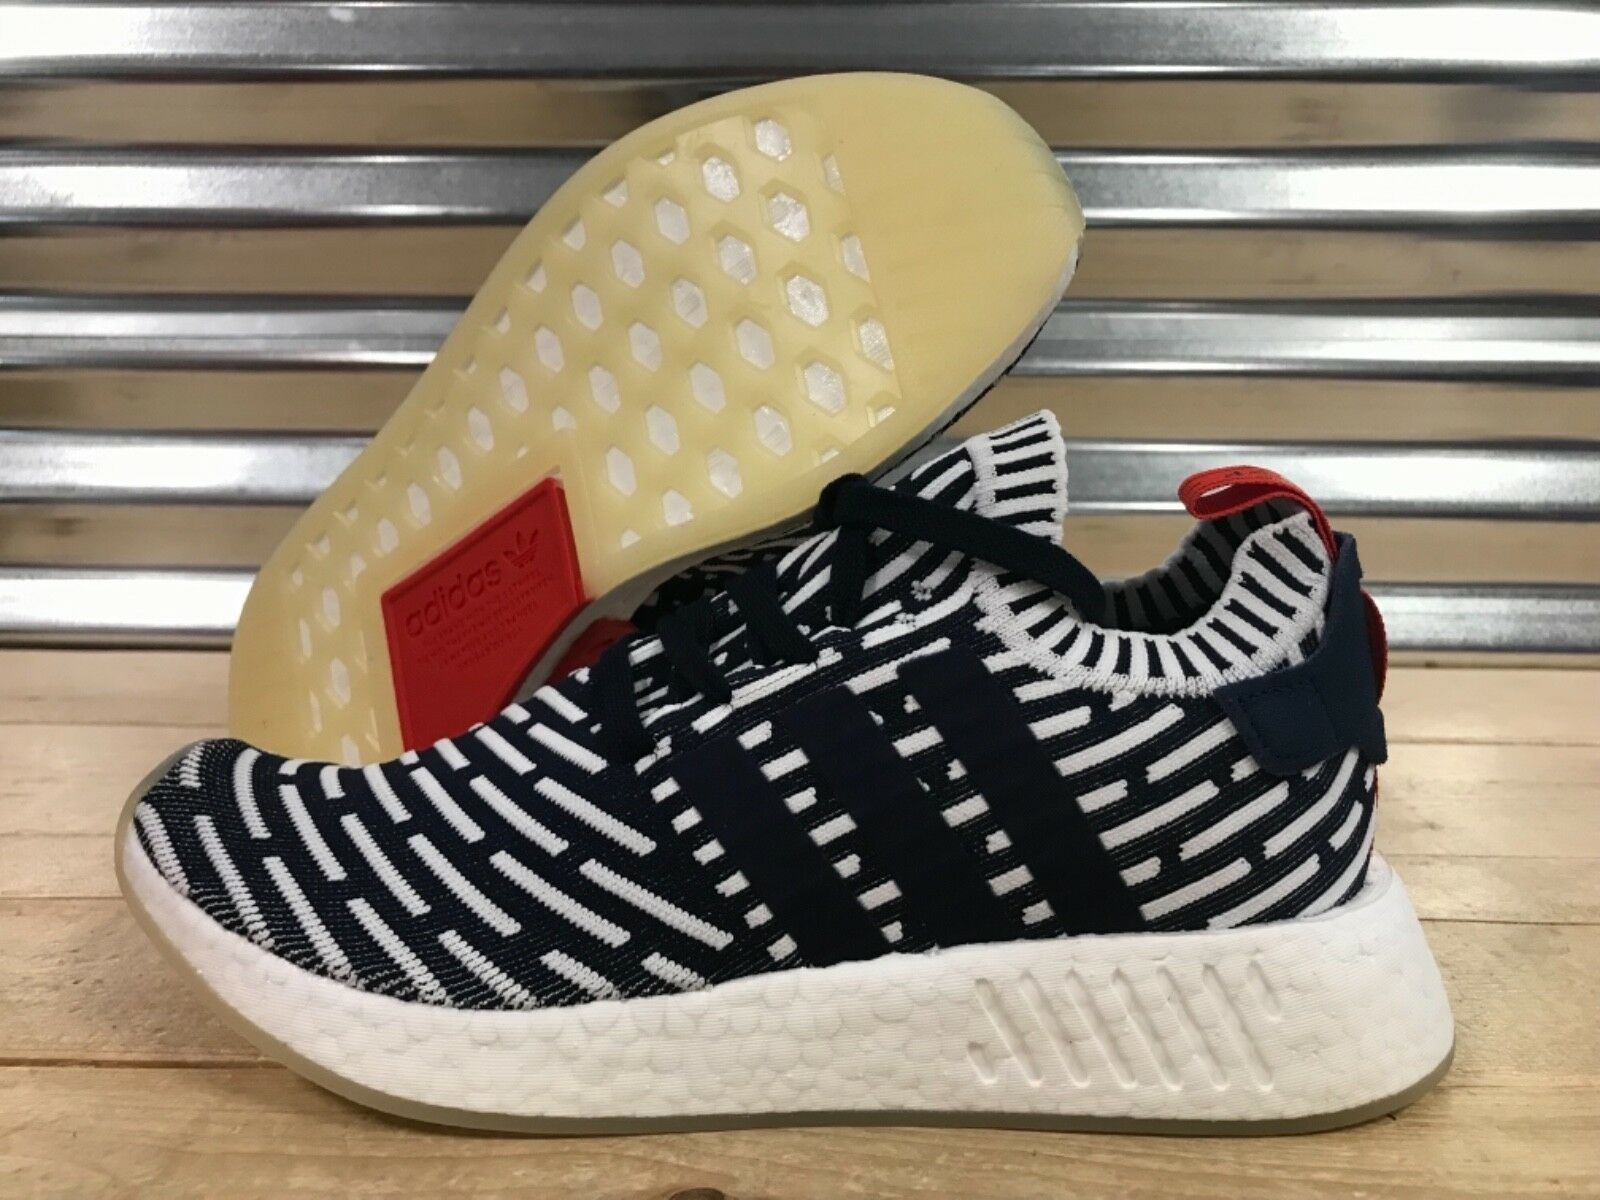 6bf6991d0 Adidas Adidas Adidas NMD R2 Primeknit Roni Running shoes Collegiate Navy  White SZ ( BB2909 )